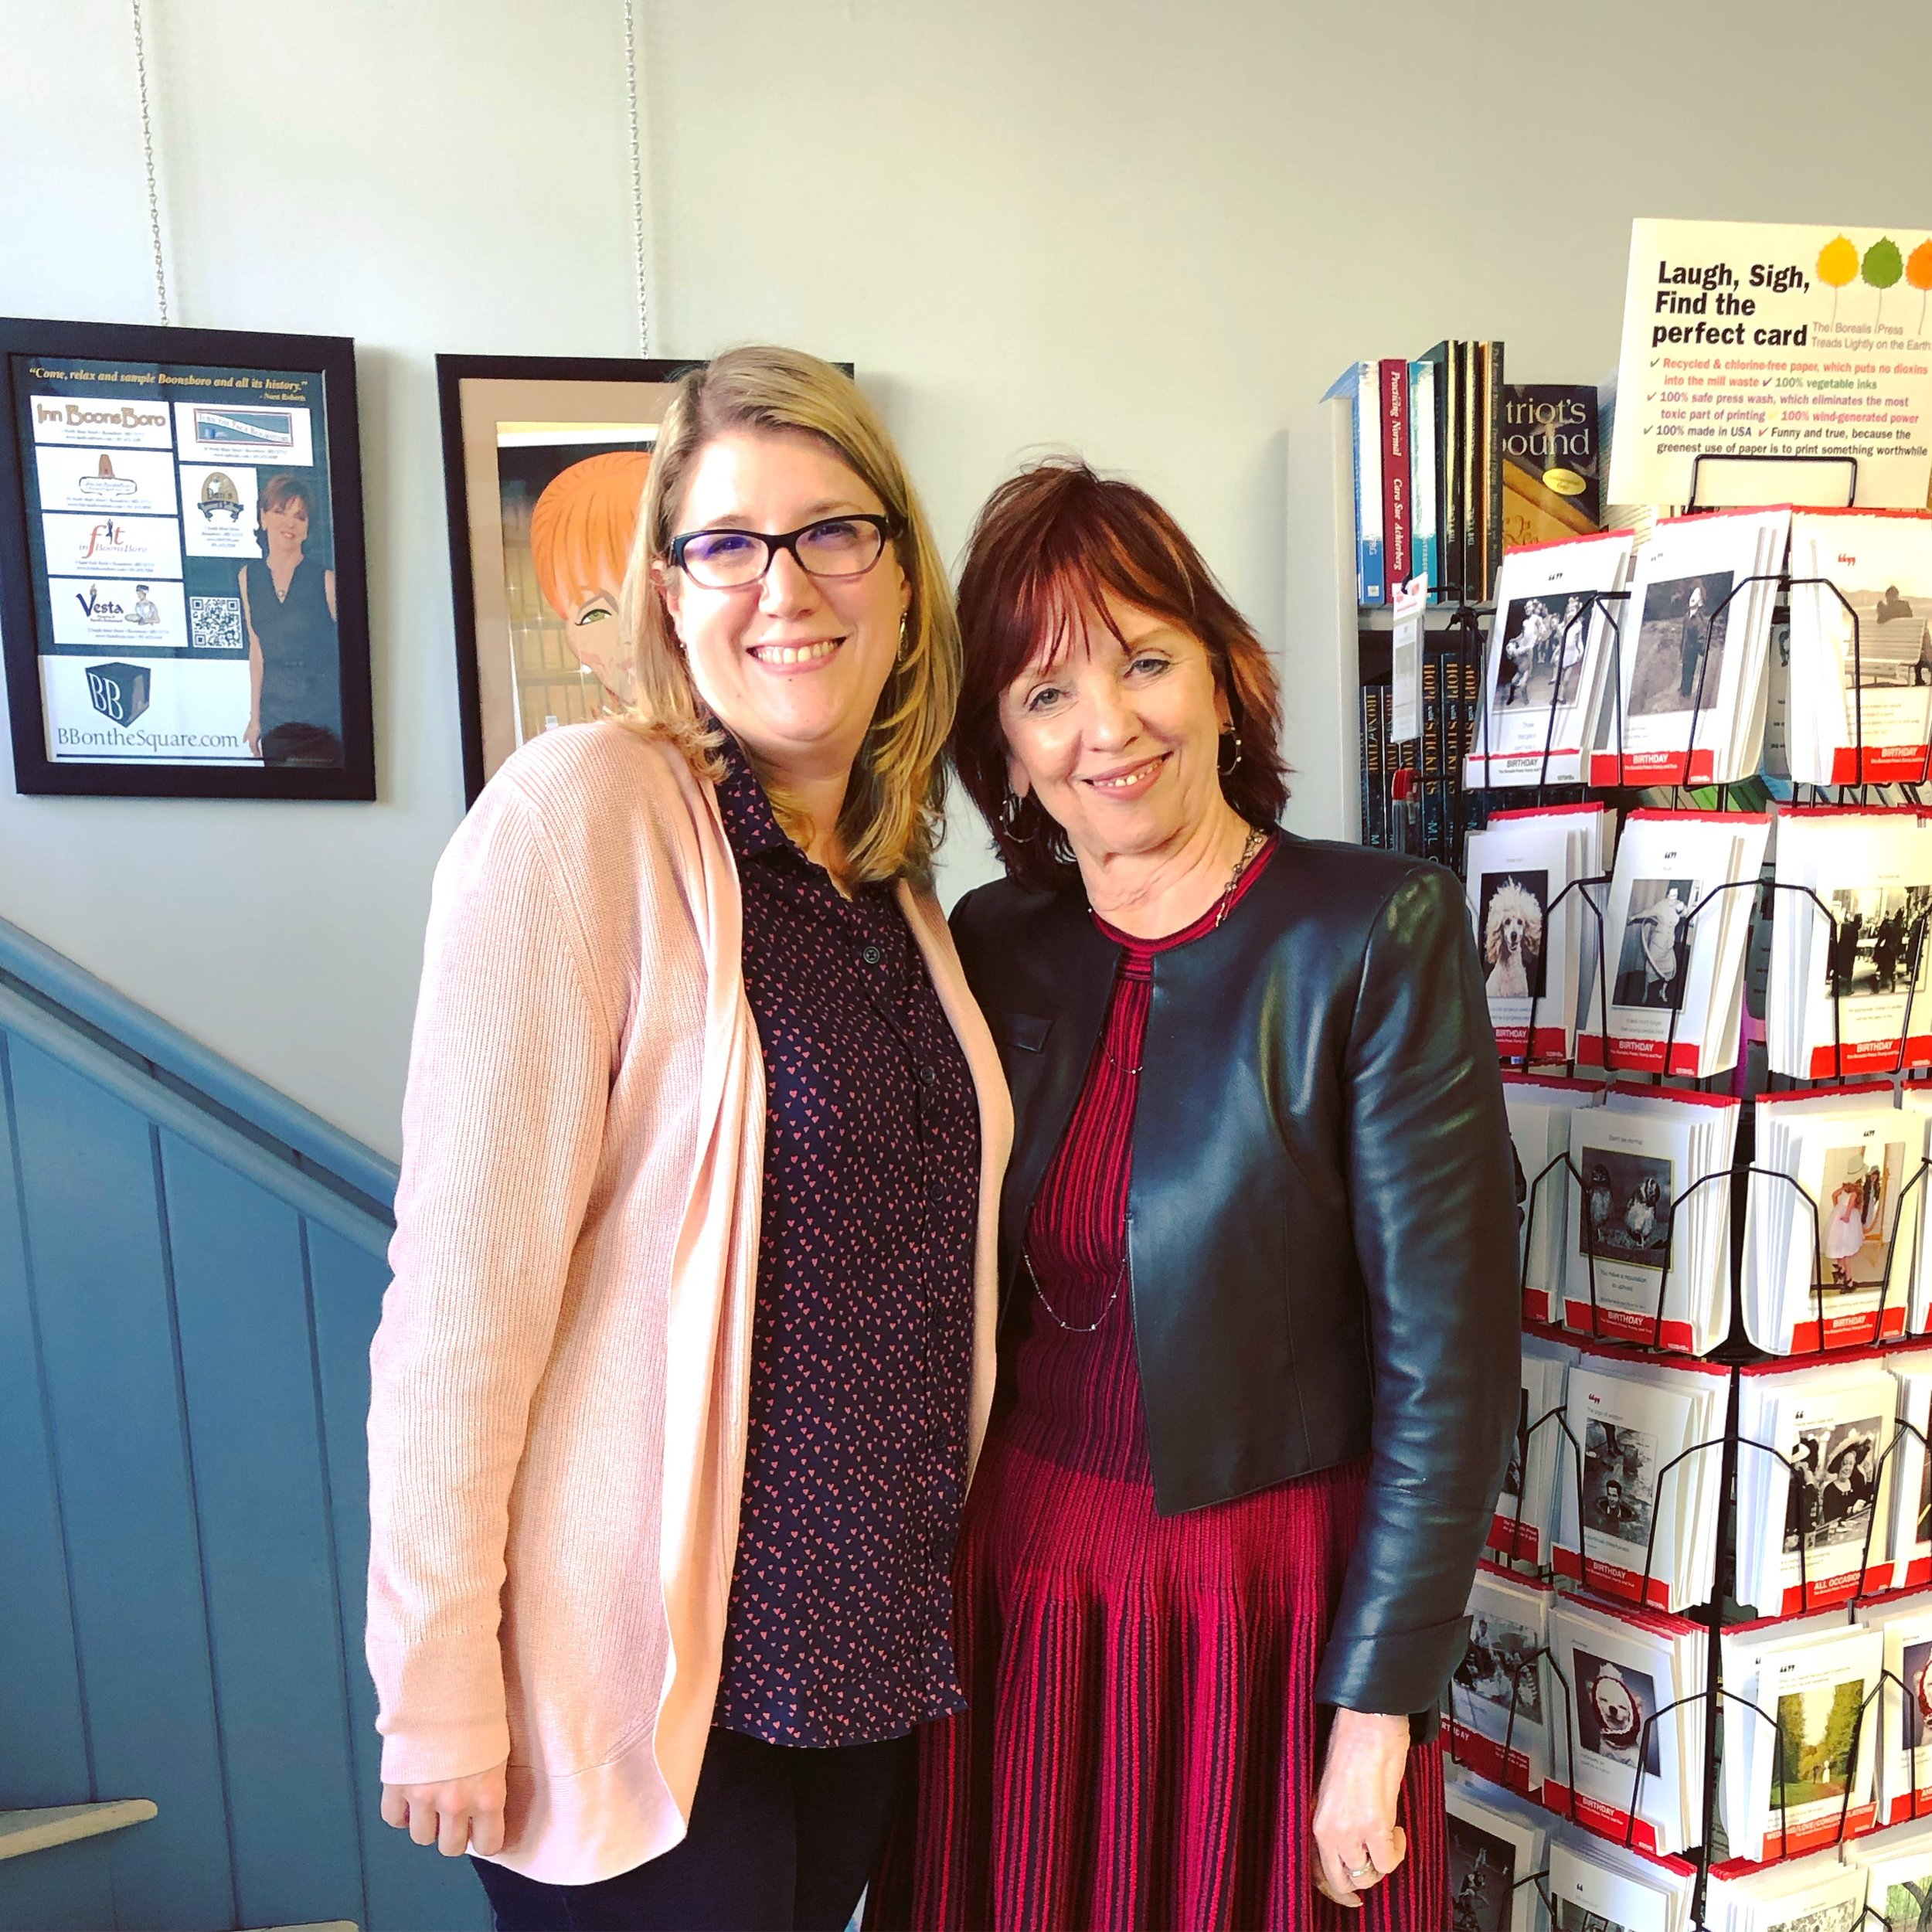 Me trying to look totally calm with Nora Roberts